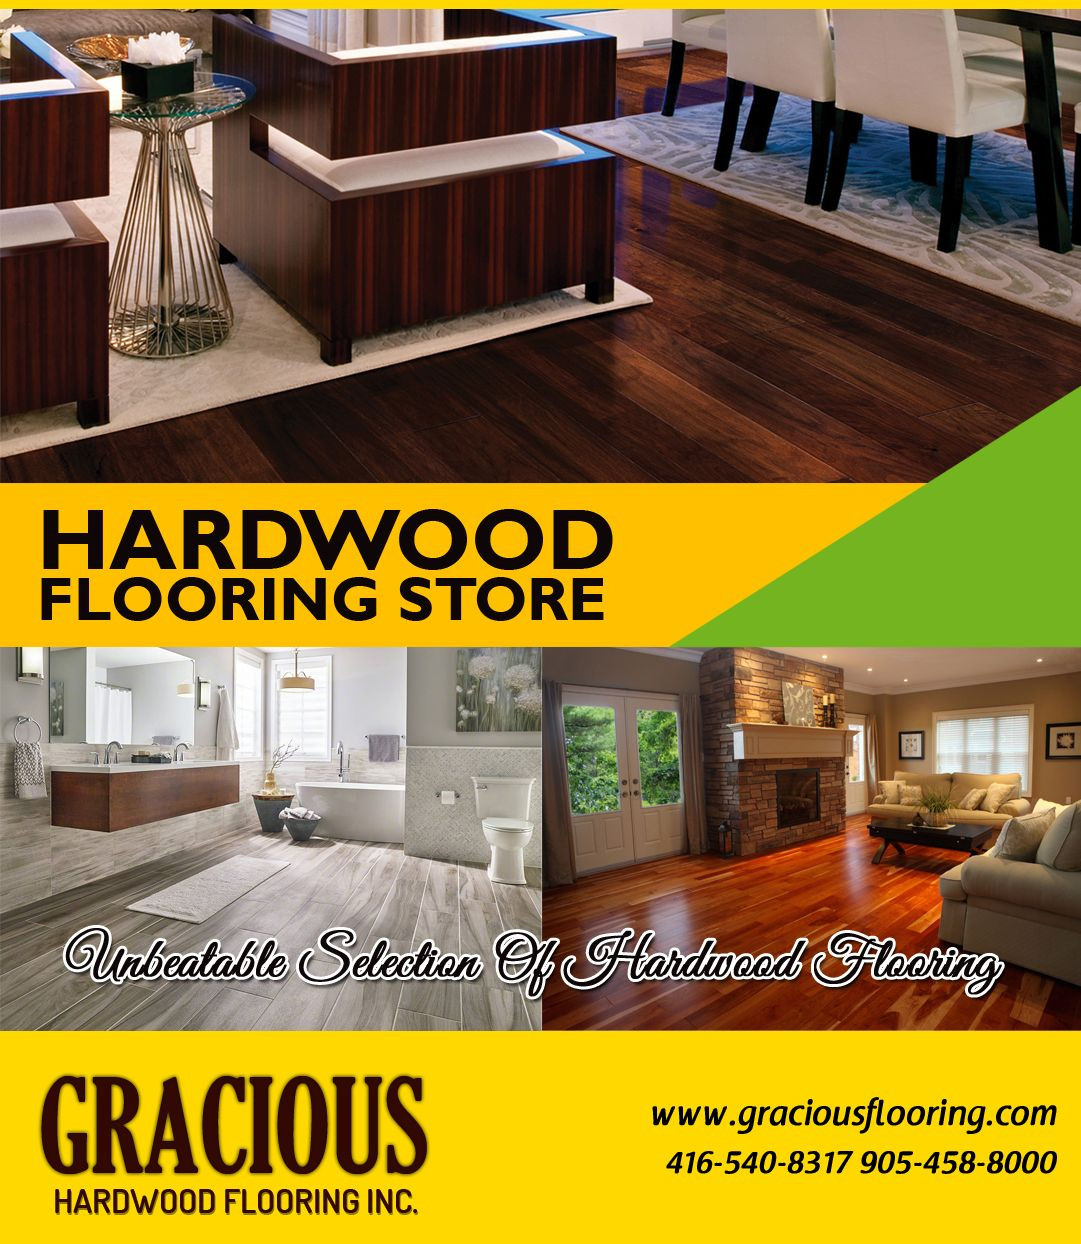 the hardwood flooring stores markham on of hello guys if you want to purchase best and and designer hardwood intended for hello guys if you want to purchase best and and designer hardwood flooring in